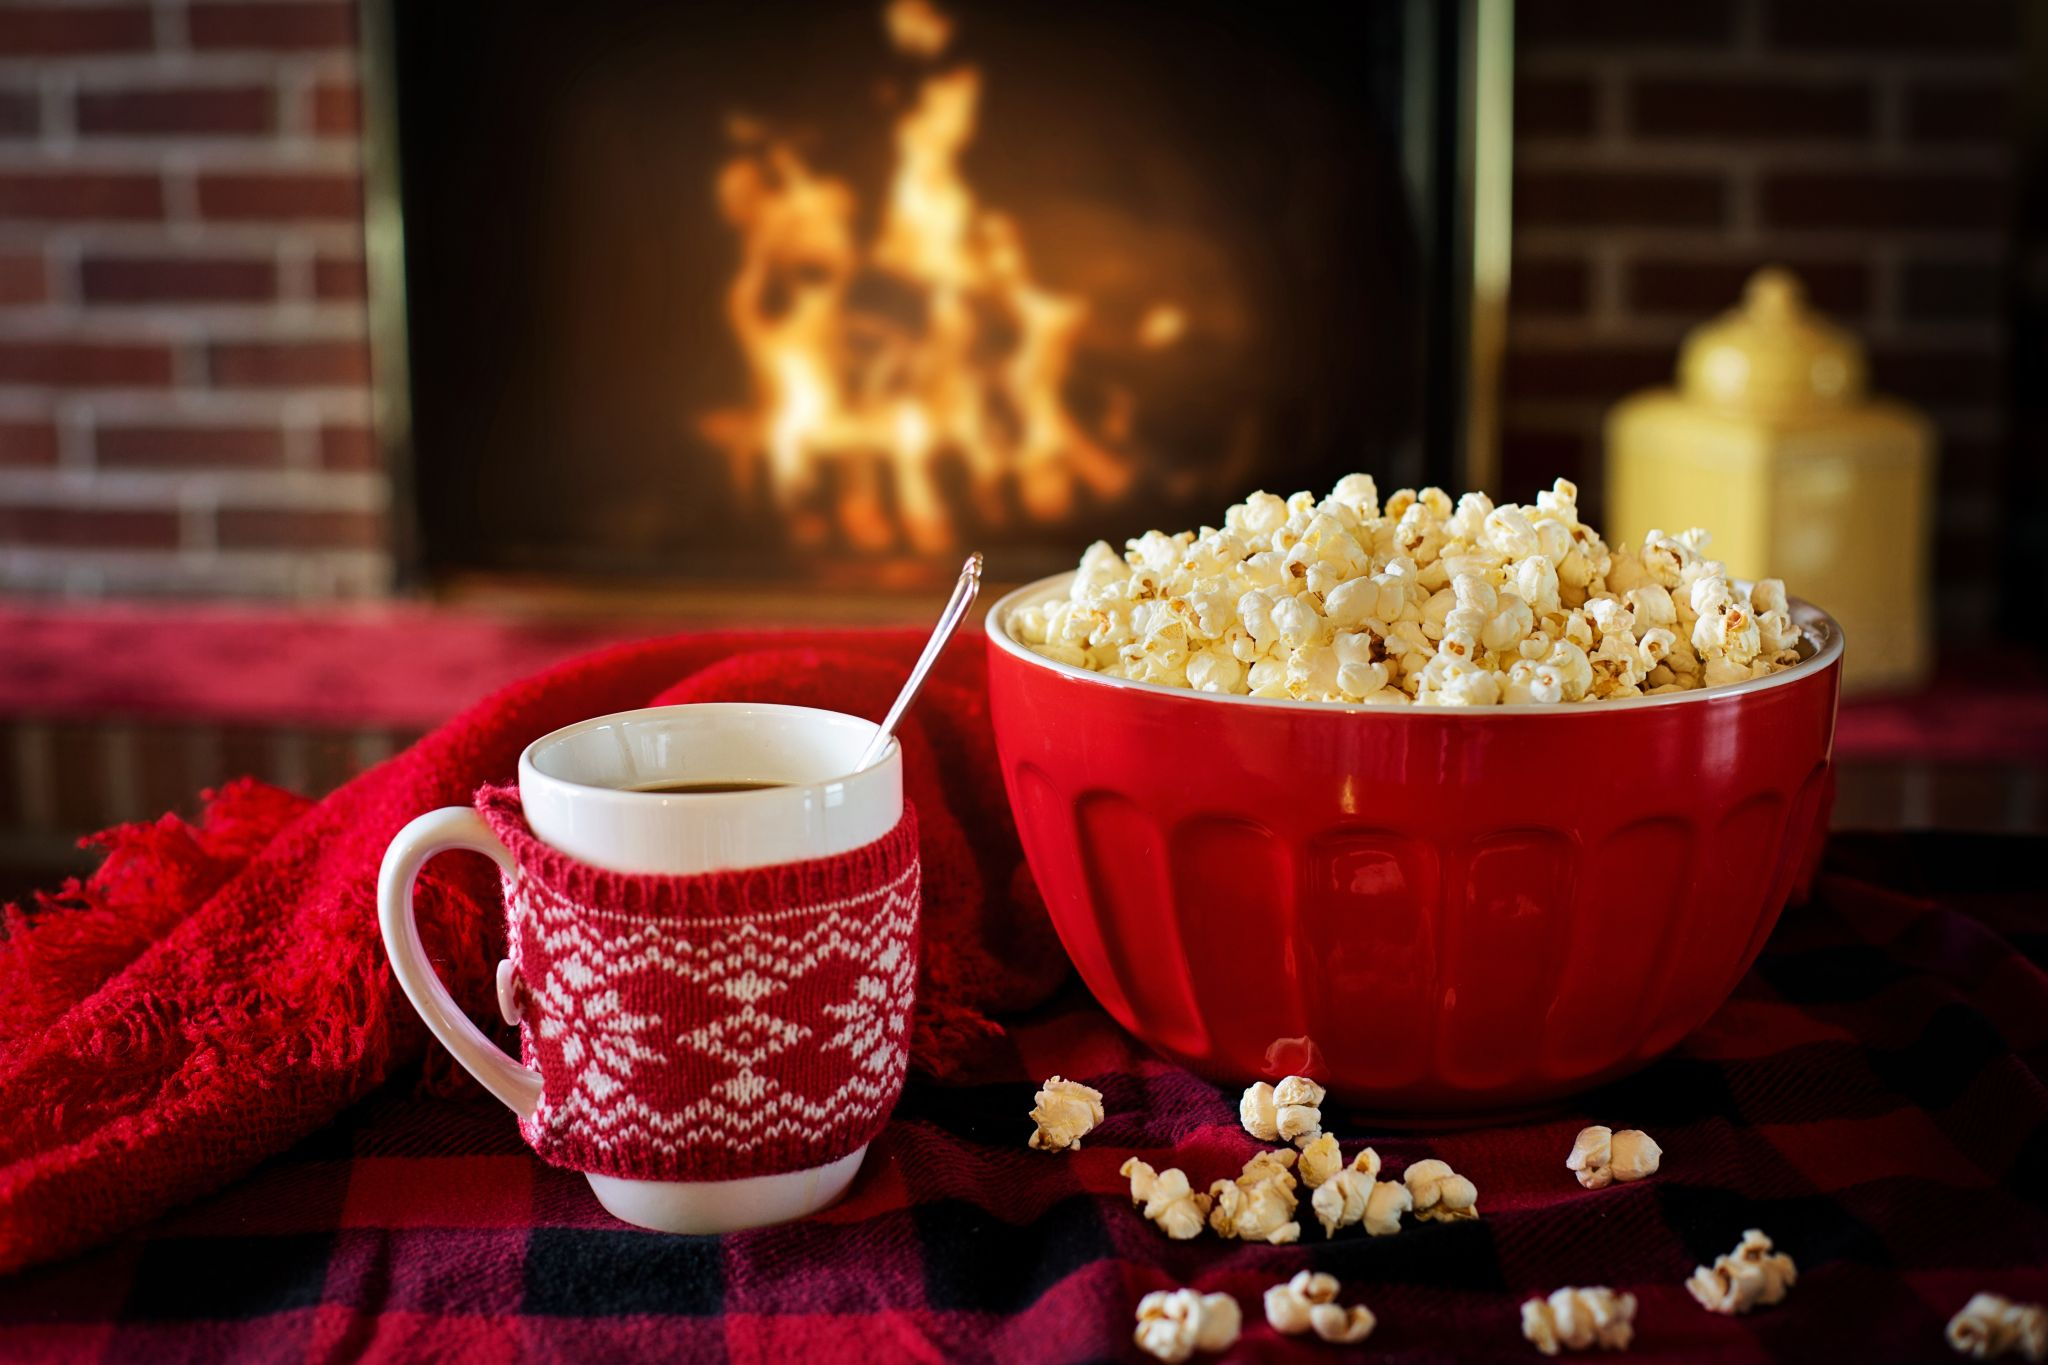 healthy snack alternatives - hot drink and popcorn by a roaring fire